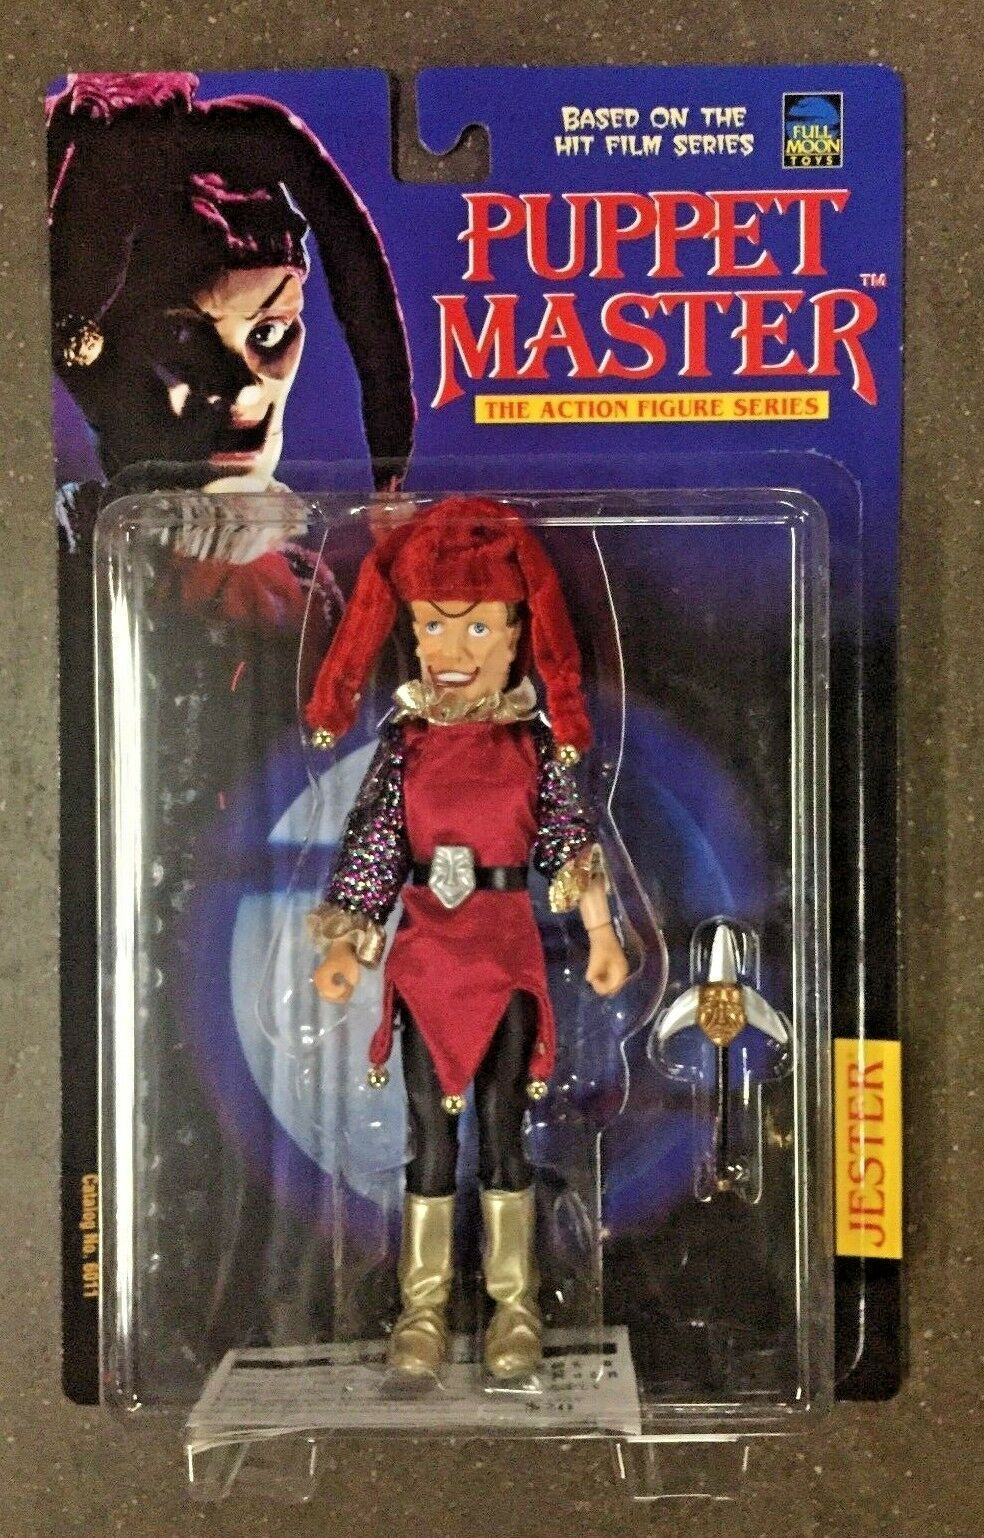 Full Moon Toys 1998 Puppet Master bufón Horror Acción Figura Monstruo Original